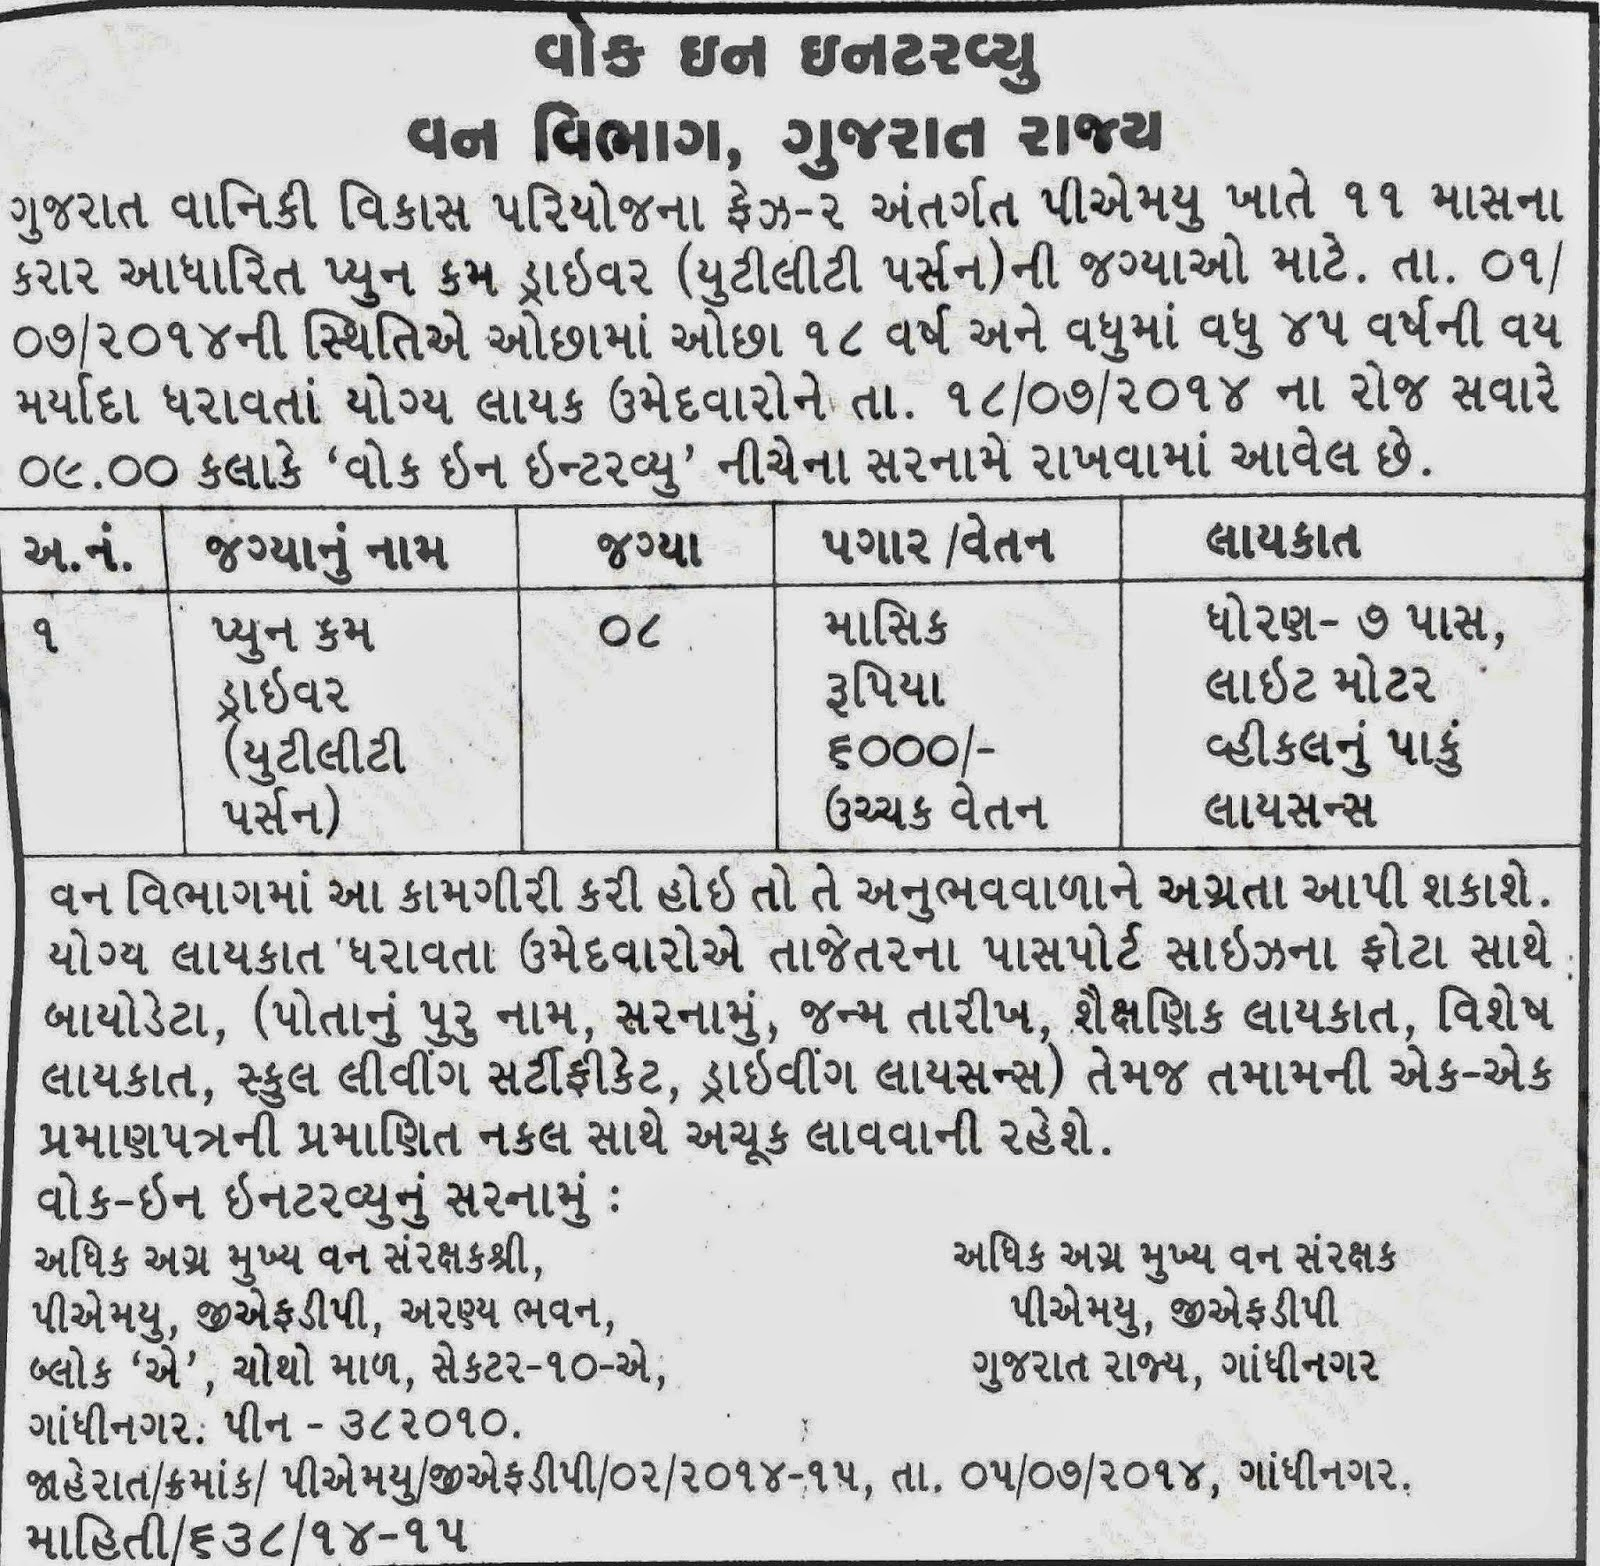 Gujarat Forestry Development Project (GFDP) Recruitment